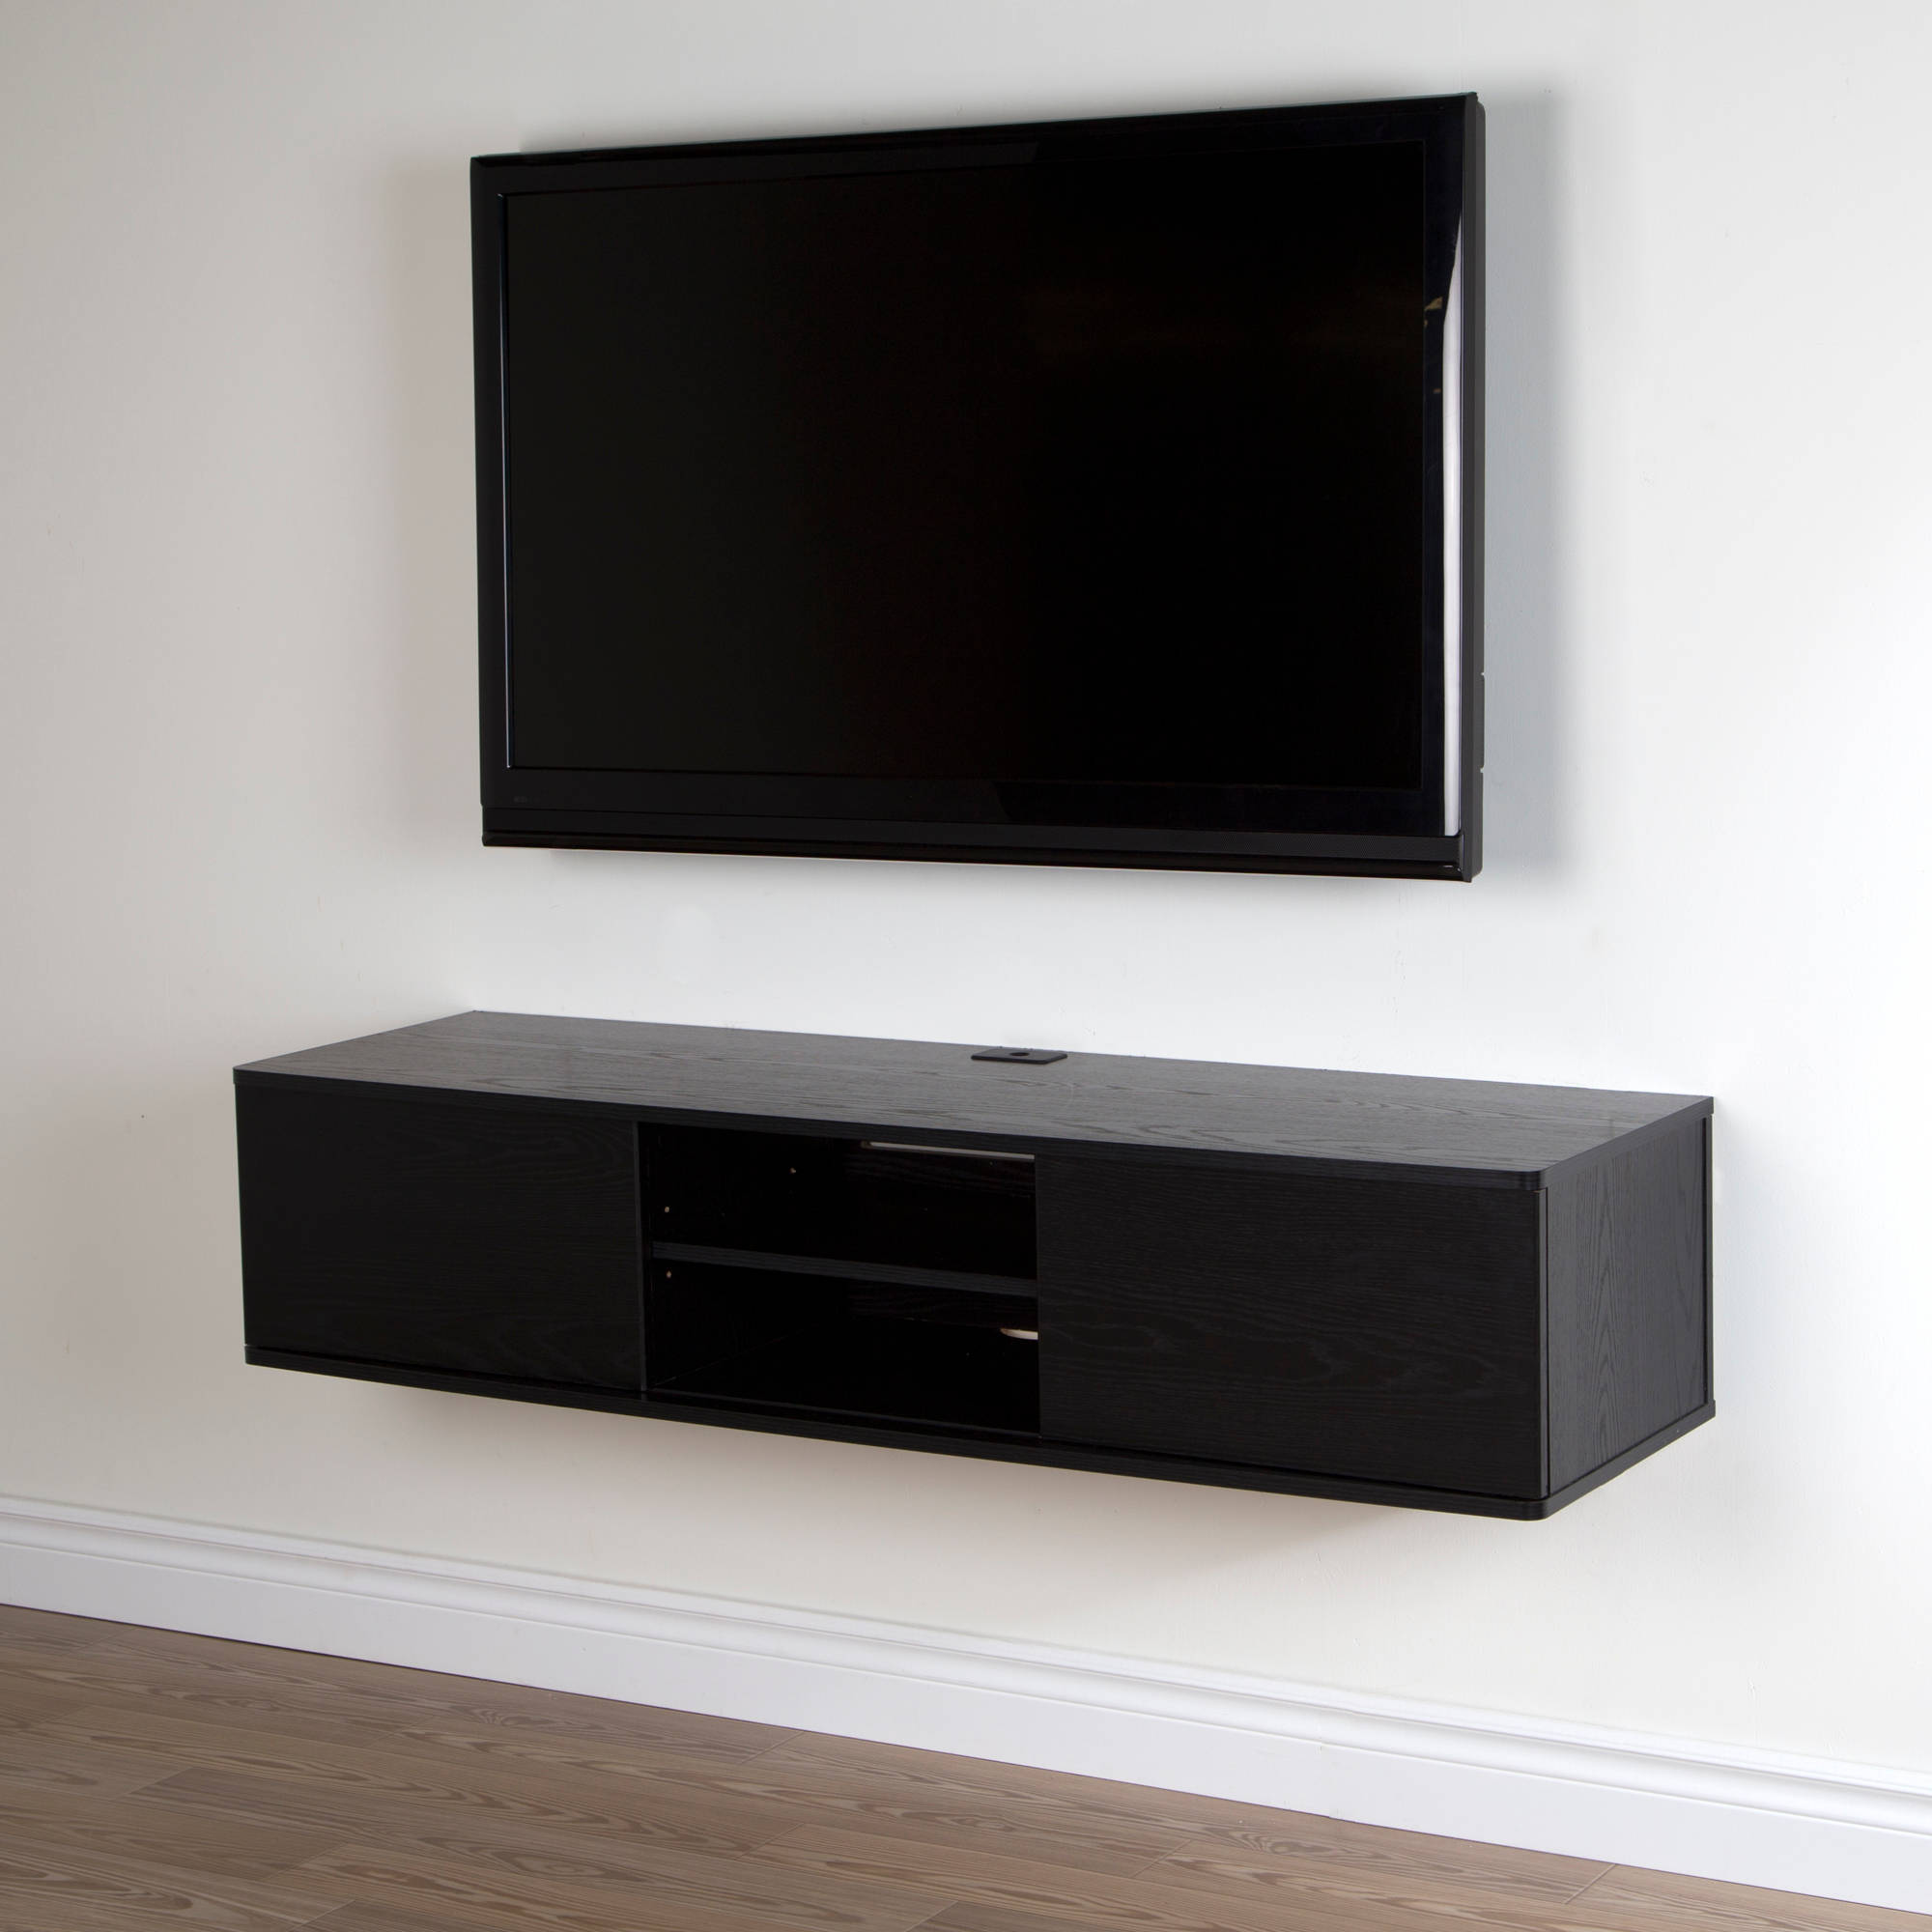 Black Wall Mounted Tv Stand Floating Cabinet With Door ...